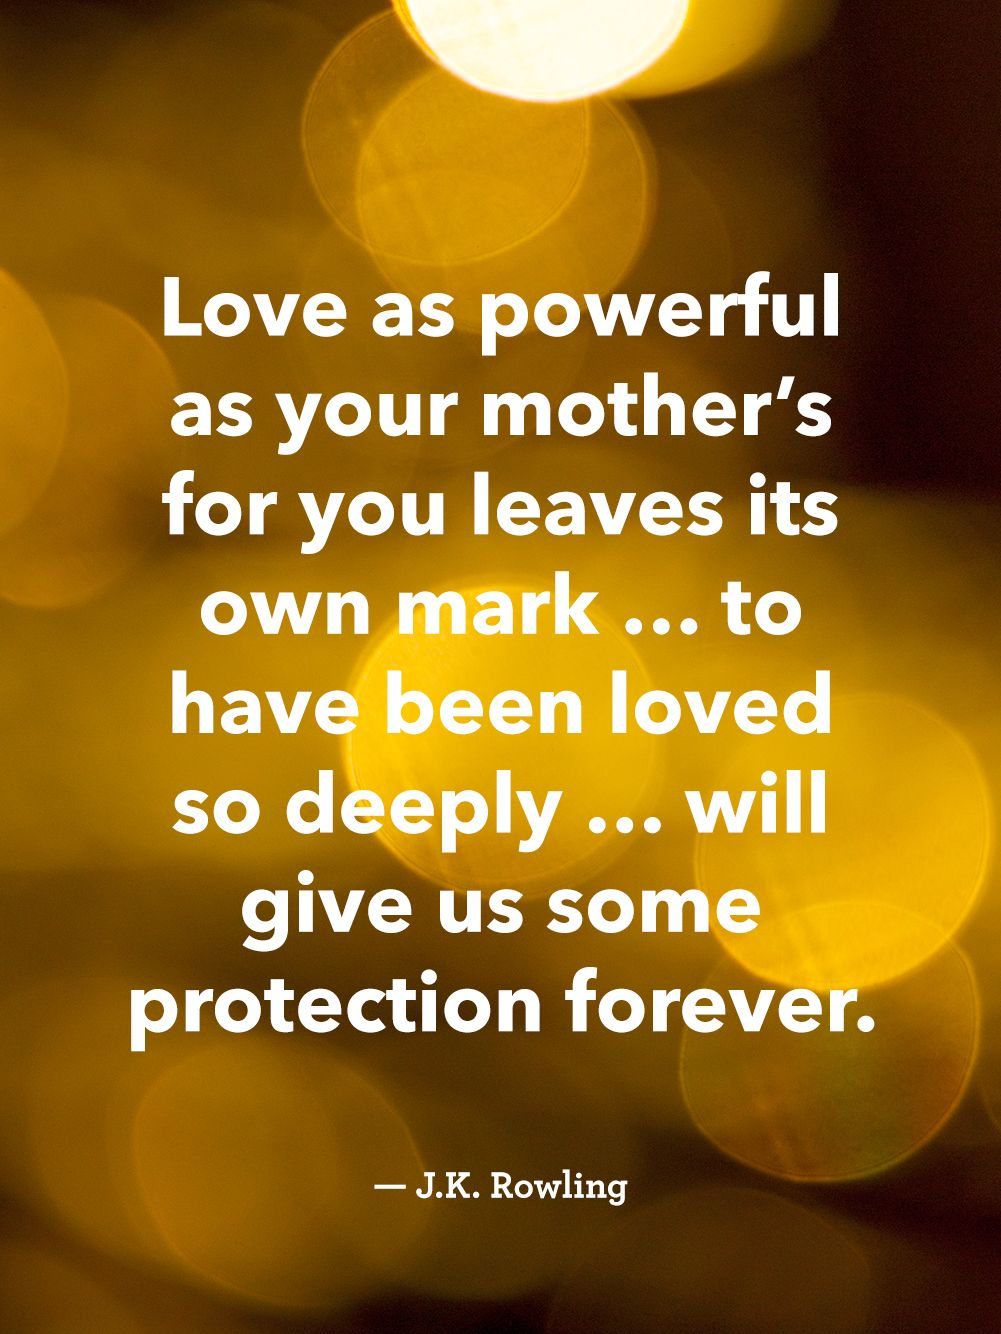 Quotes About Mothers Love 20 Thoughtful Poems And Quotes For Mother's Day